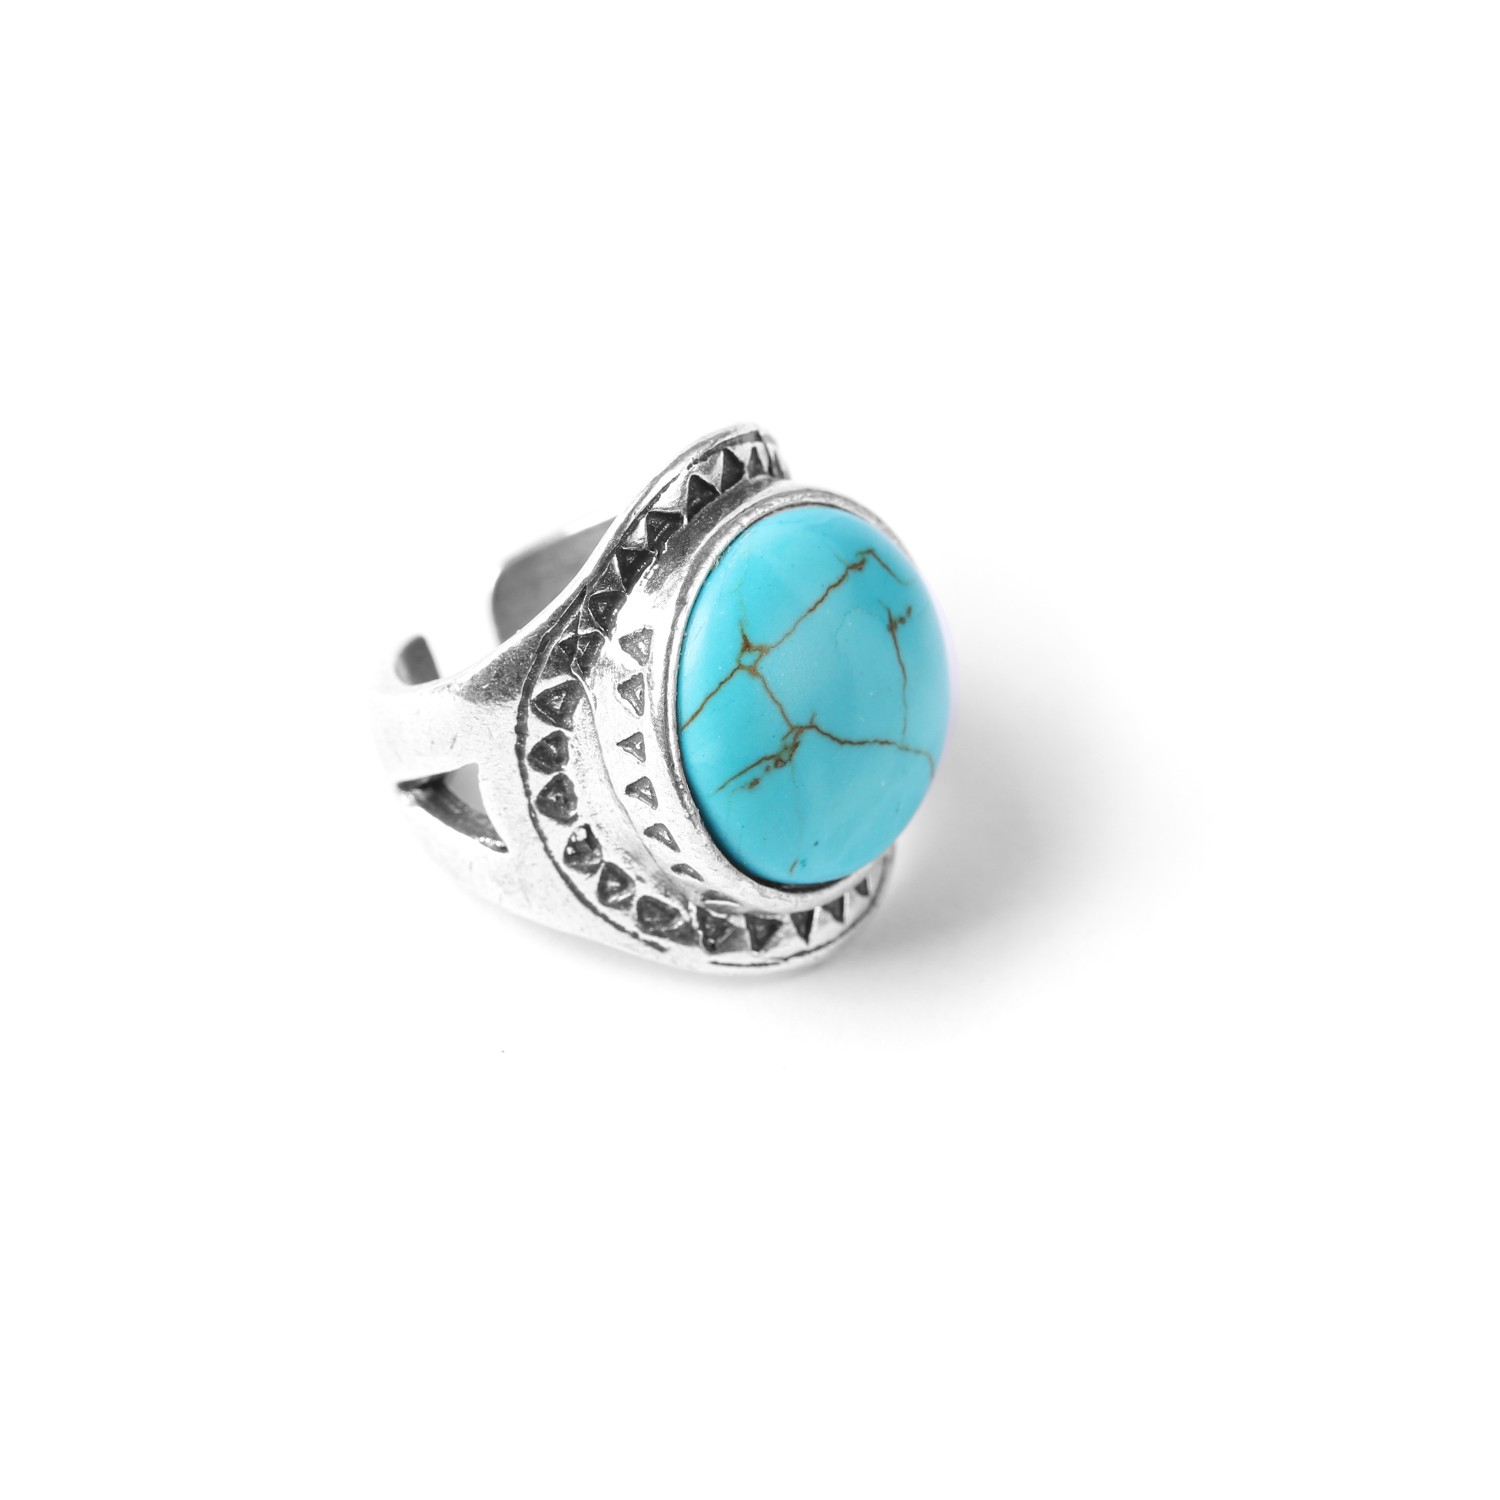 LES CHEVALIERES turquoise howlite ring